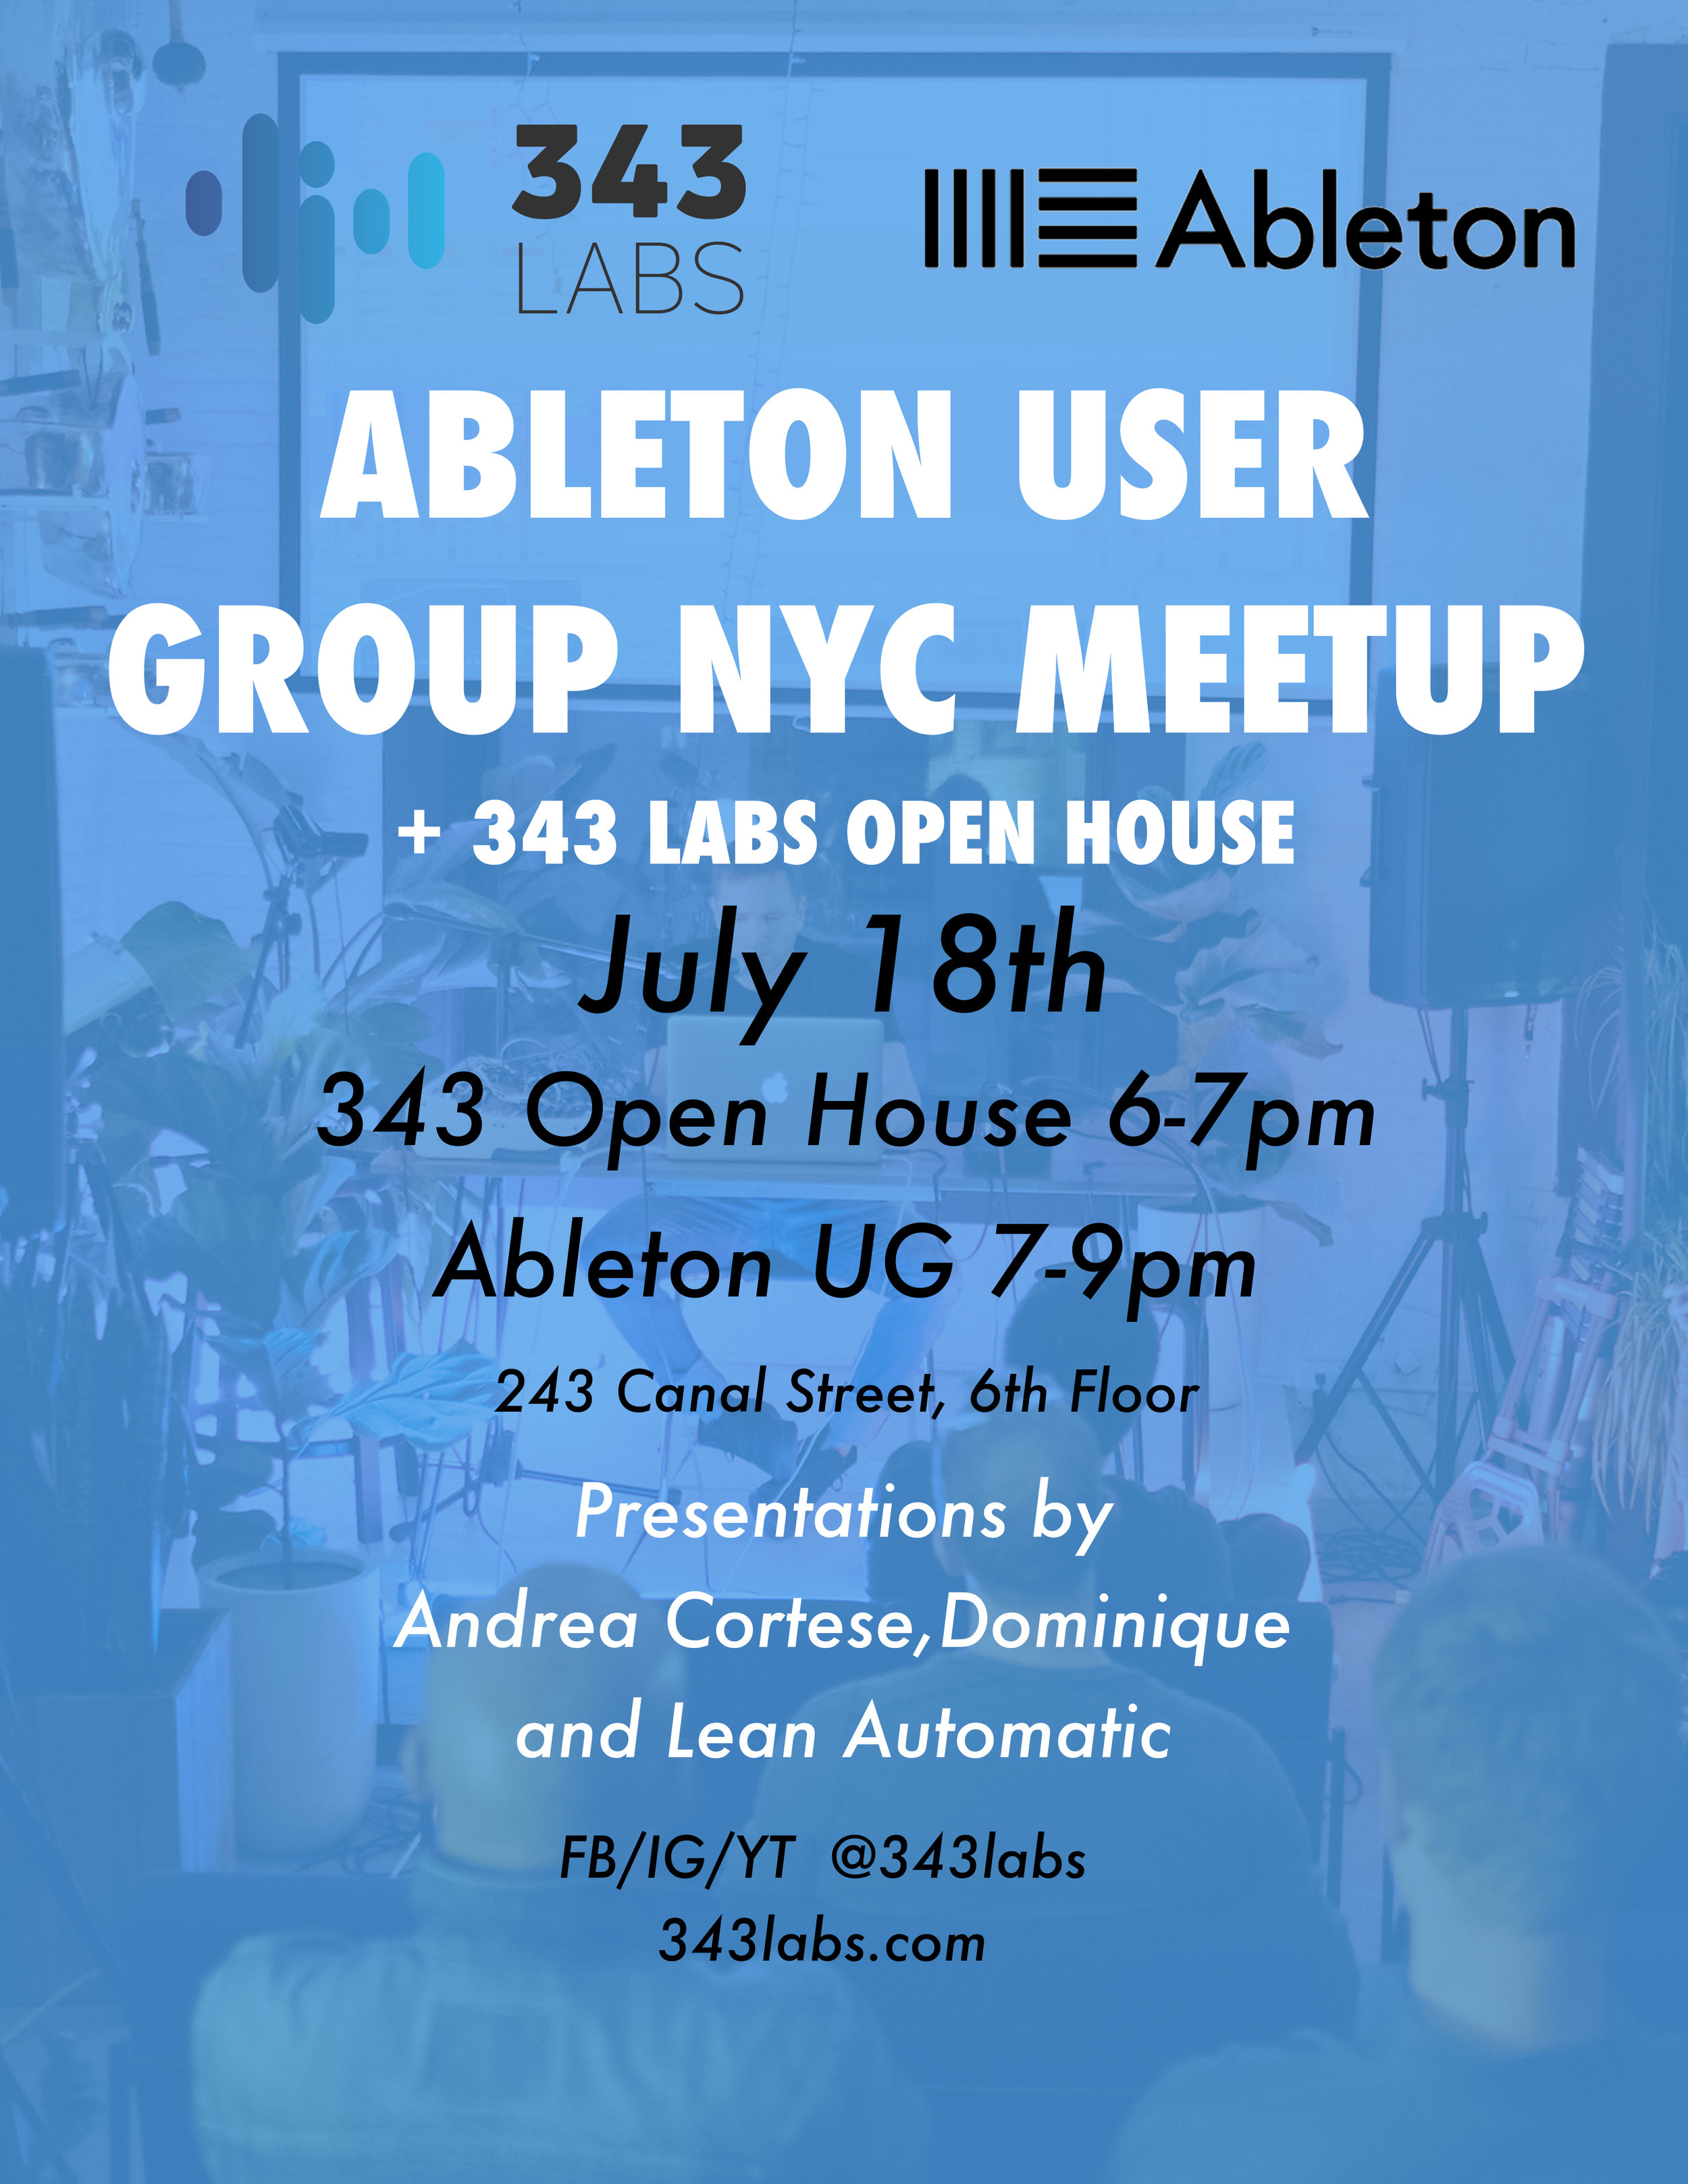 Ableton UG Meetup July 18th Final.jpg